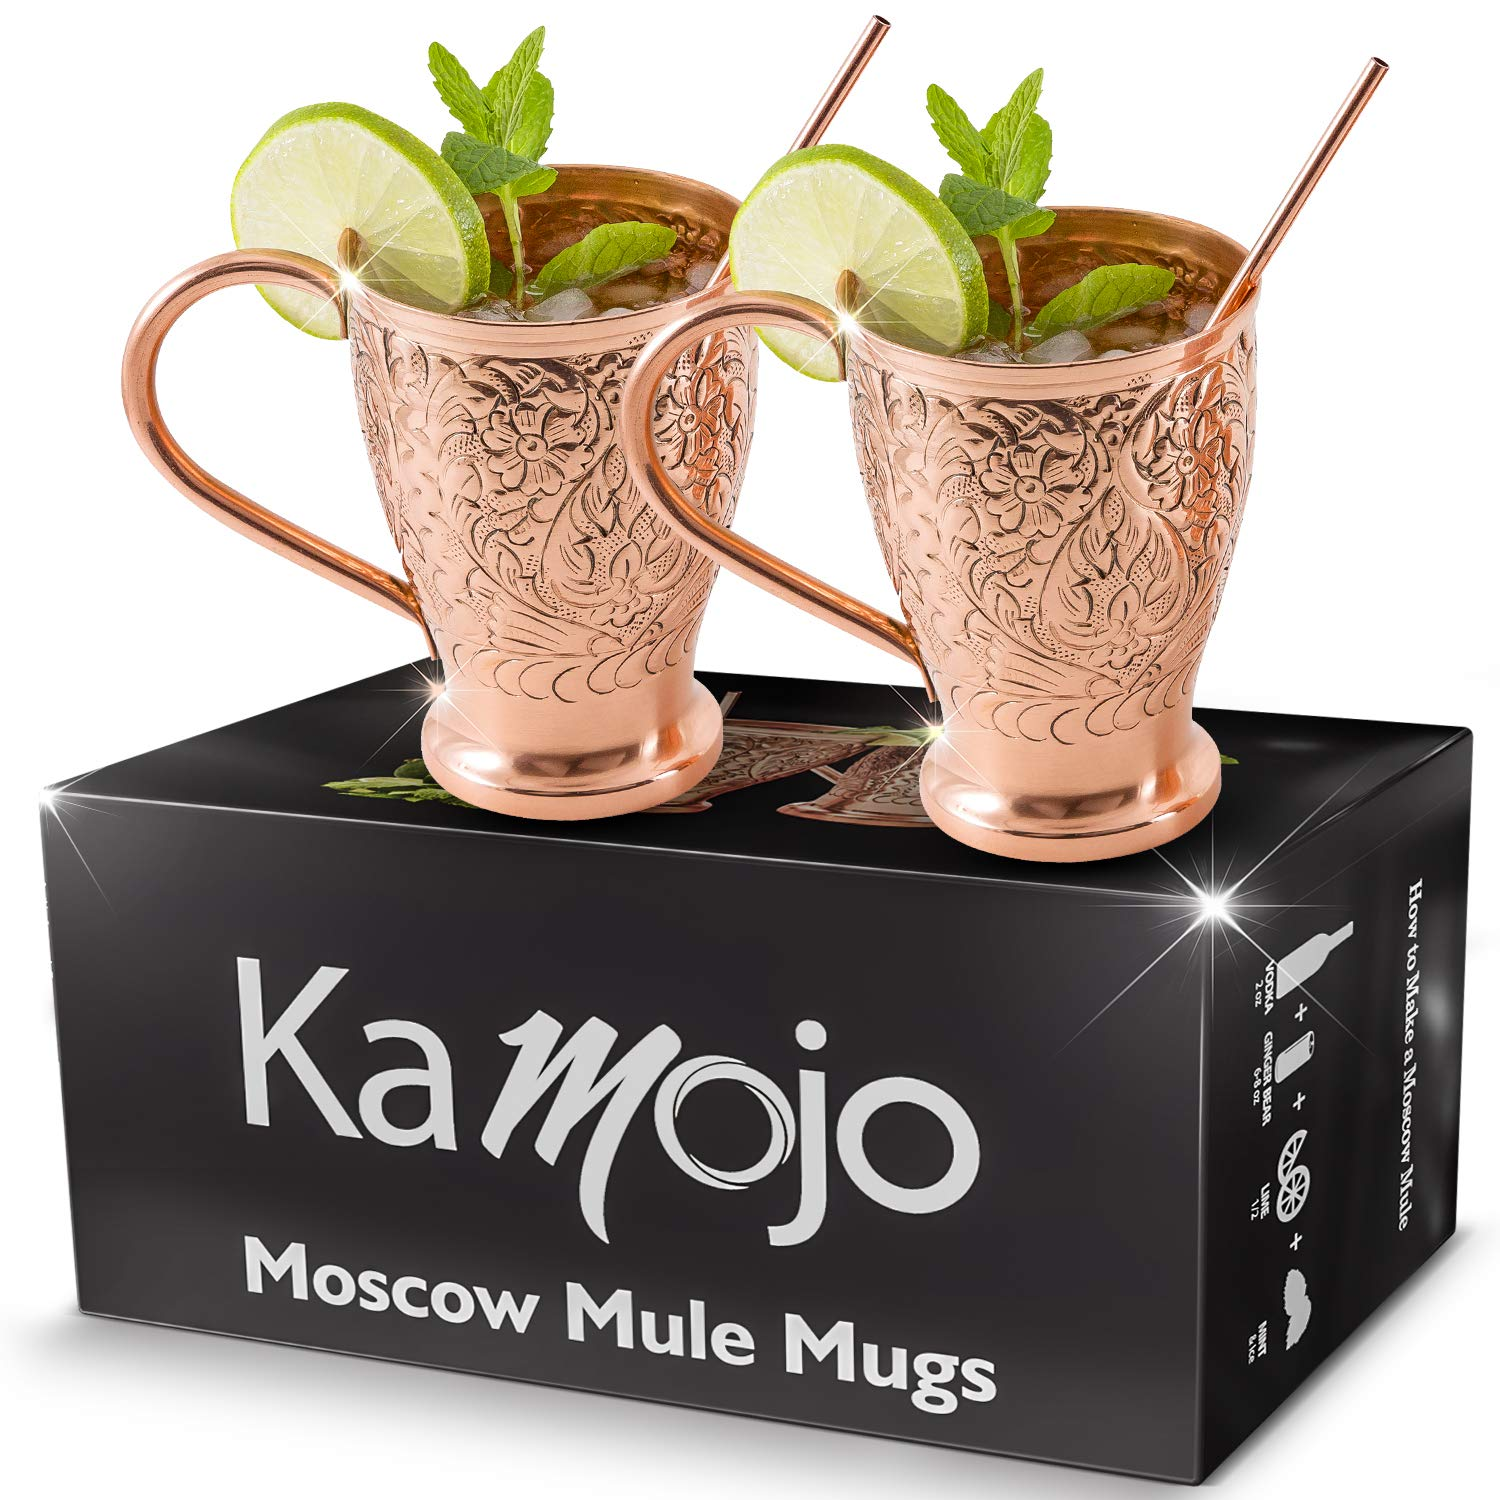 Moscow Mule Copper Mugs - Stunning Embossed Gift Set of 2 Pure Copper Cups - Bonus Straws/Stir Sticks/Recipes - Gift Set By Kamojo by Kamojo